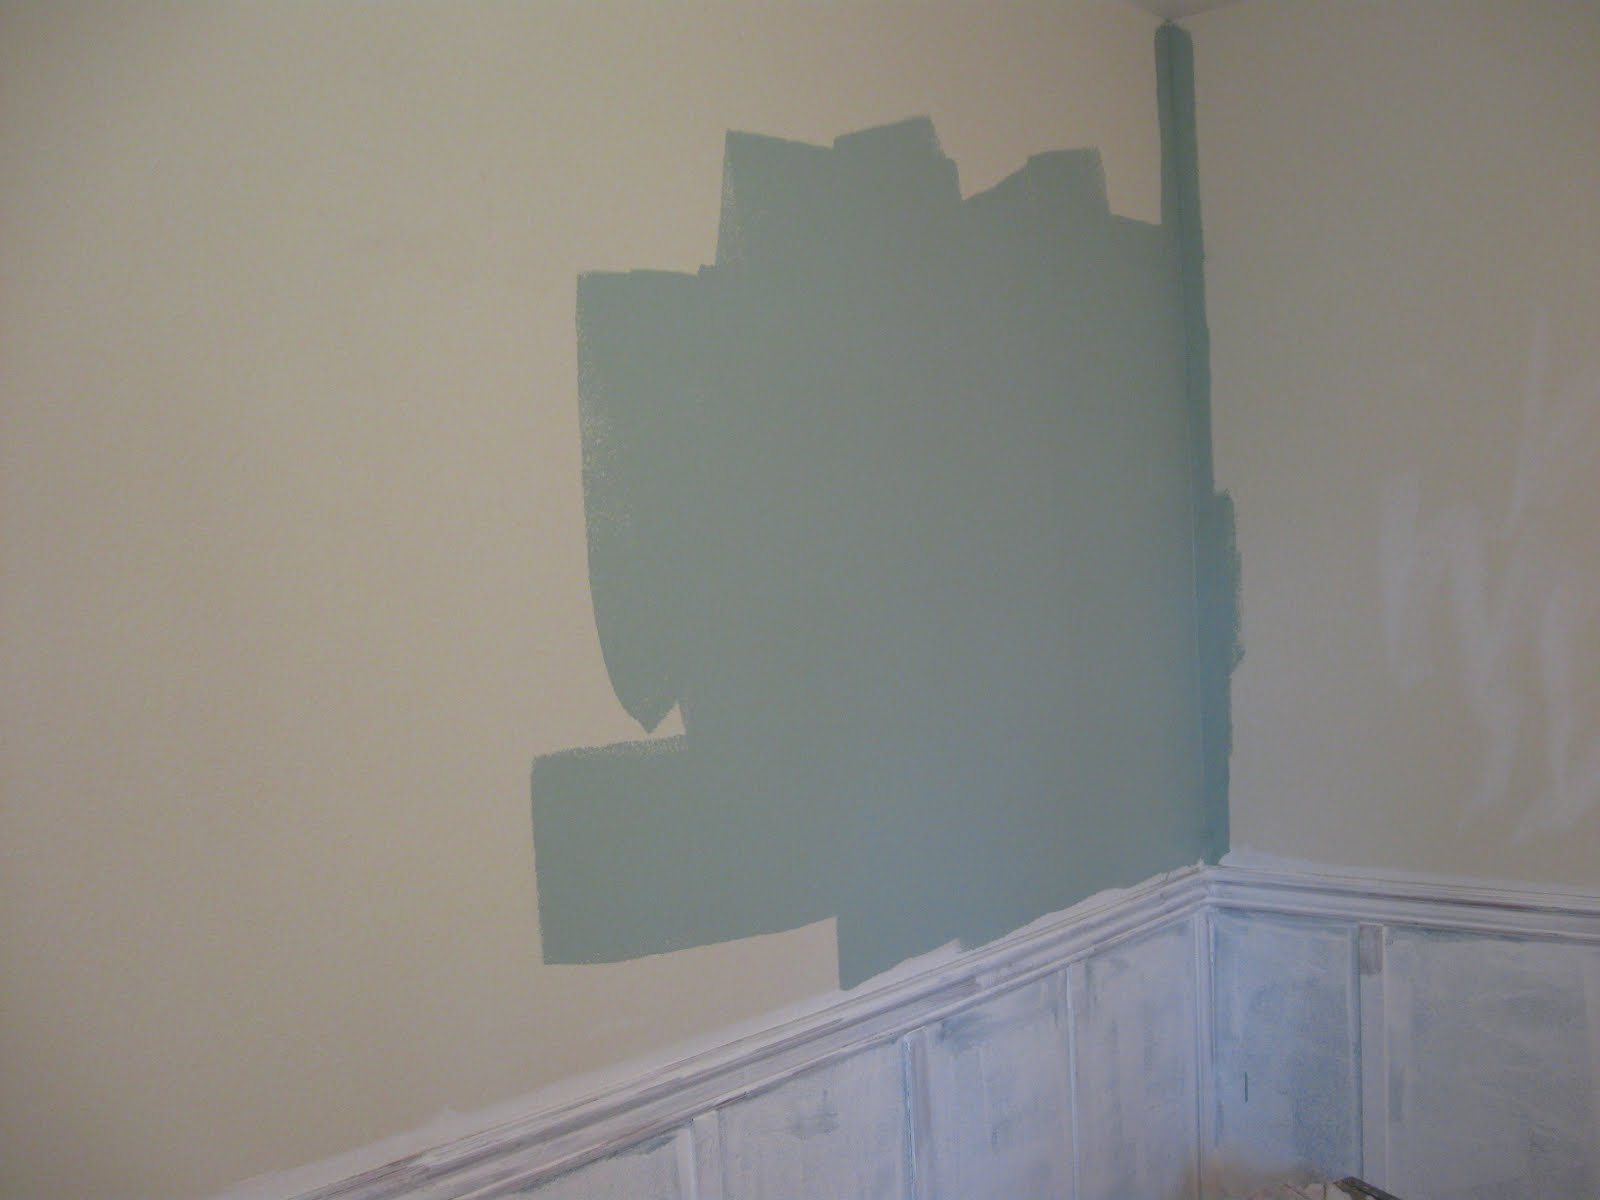 Wainscoting master bedroom - Master Bedroom Remodel With White Wainscoting Panels